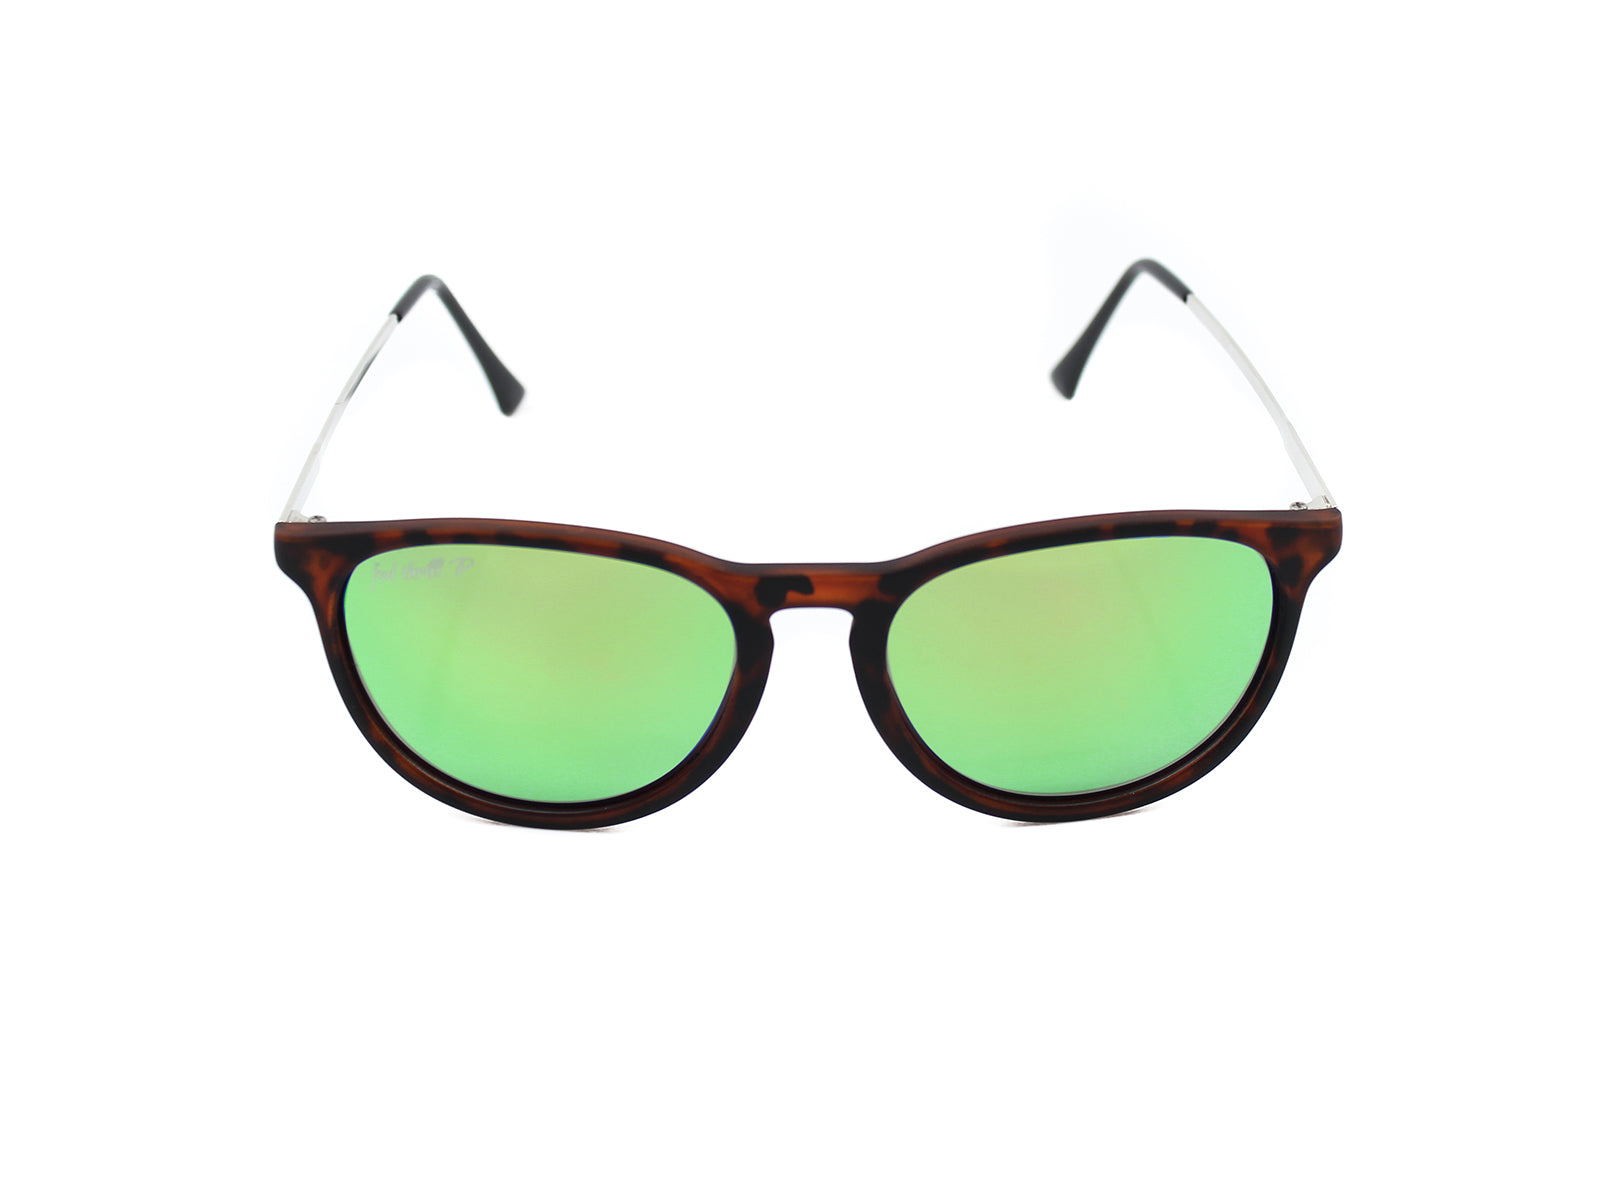 Porters - Harbors: Tortoise/ Mirrored Green Polarized